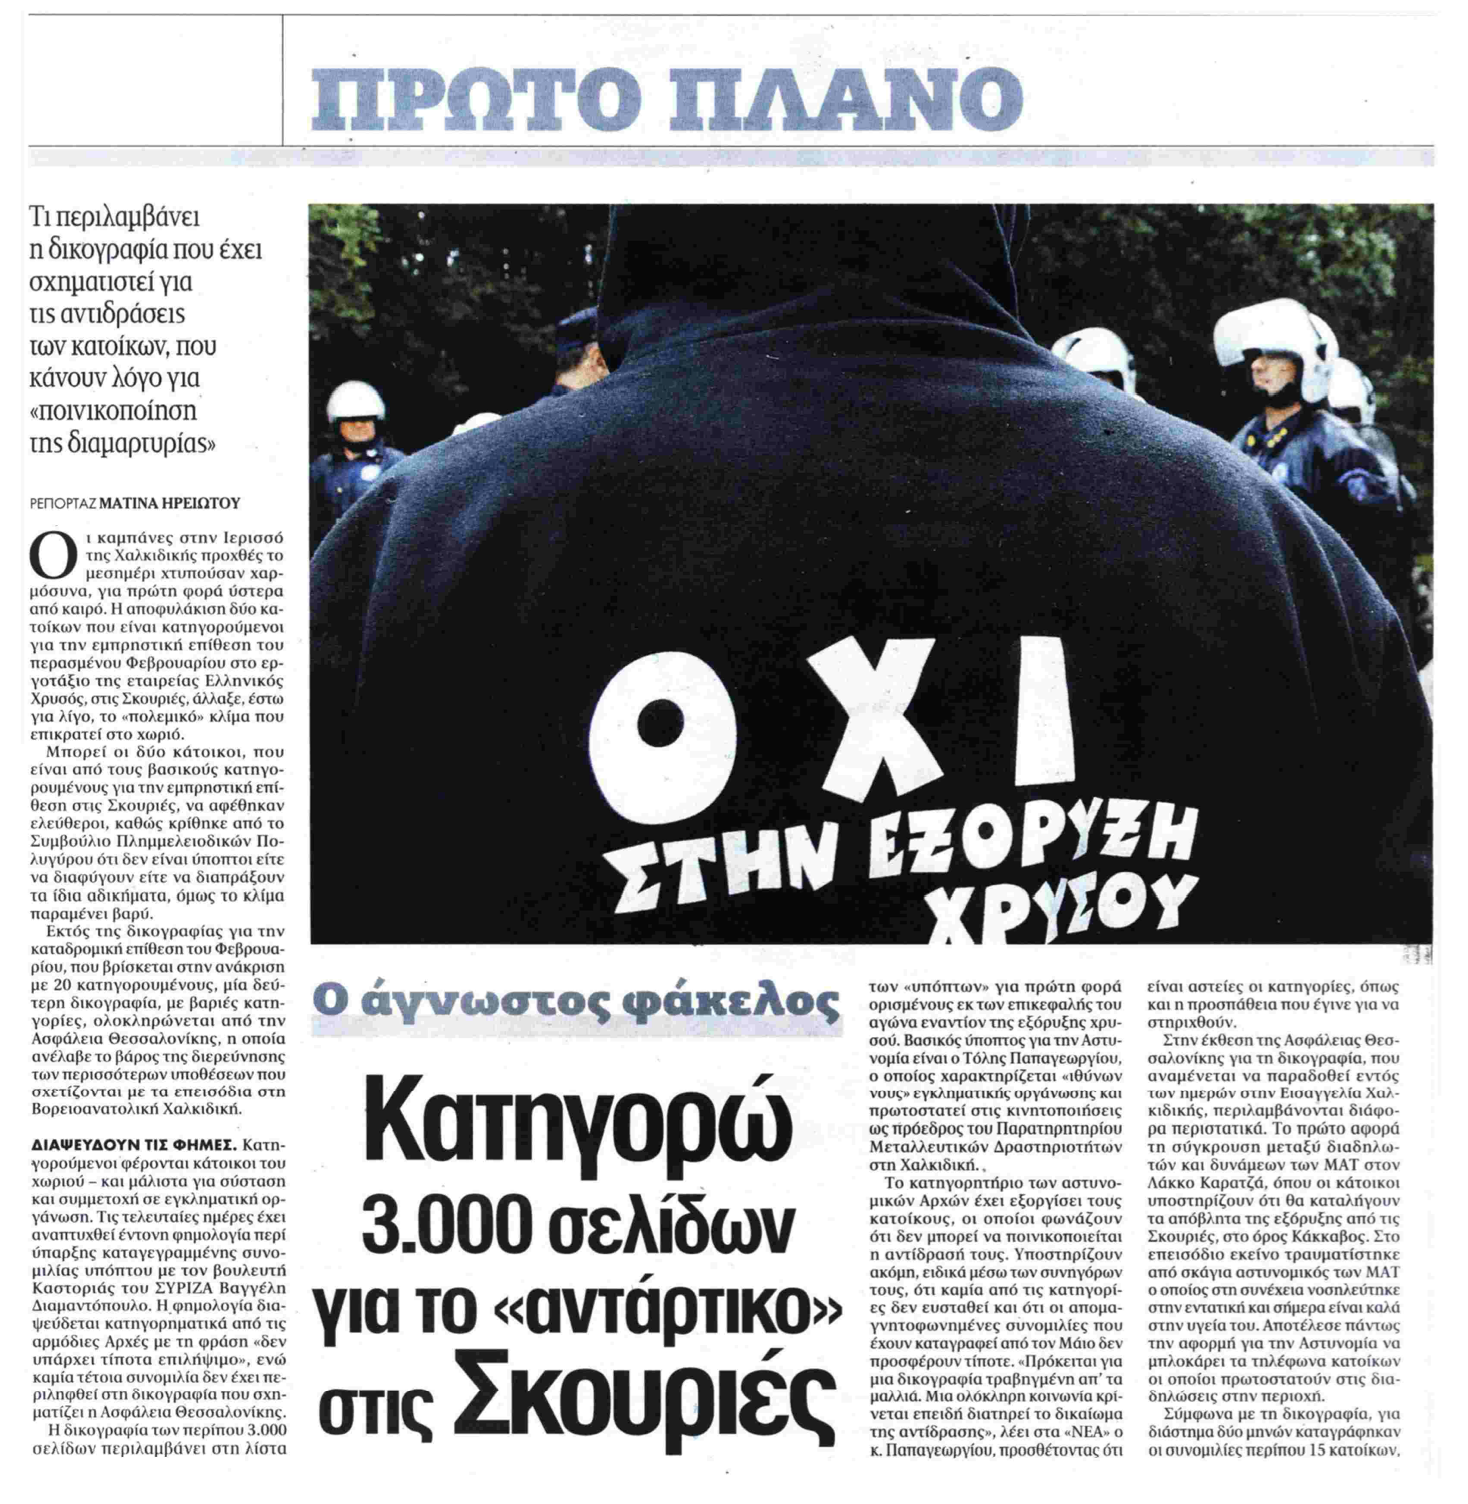 http://antigoldgreece.files.wordpress.com/2013/10/screenshot2013-10-16at12-58-47pm.png